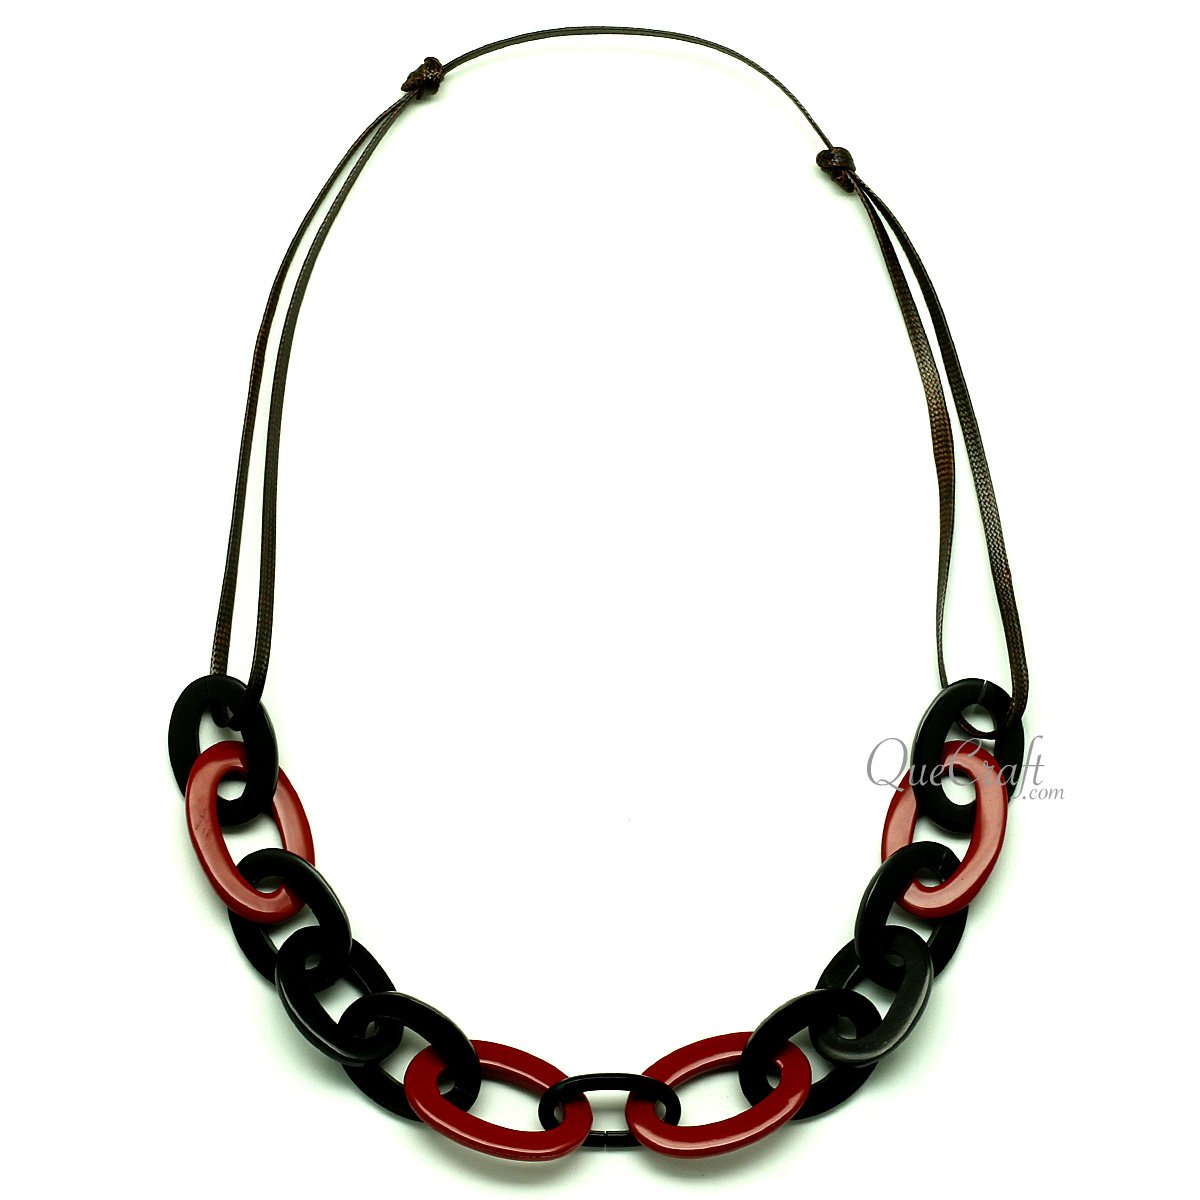 Horn & Lacquer String Necklace #12941 - HORN.JEWELRY